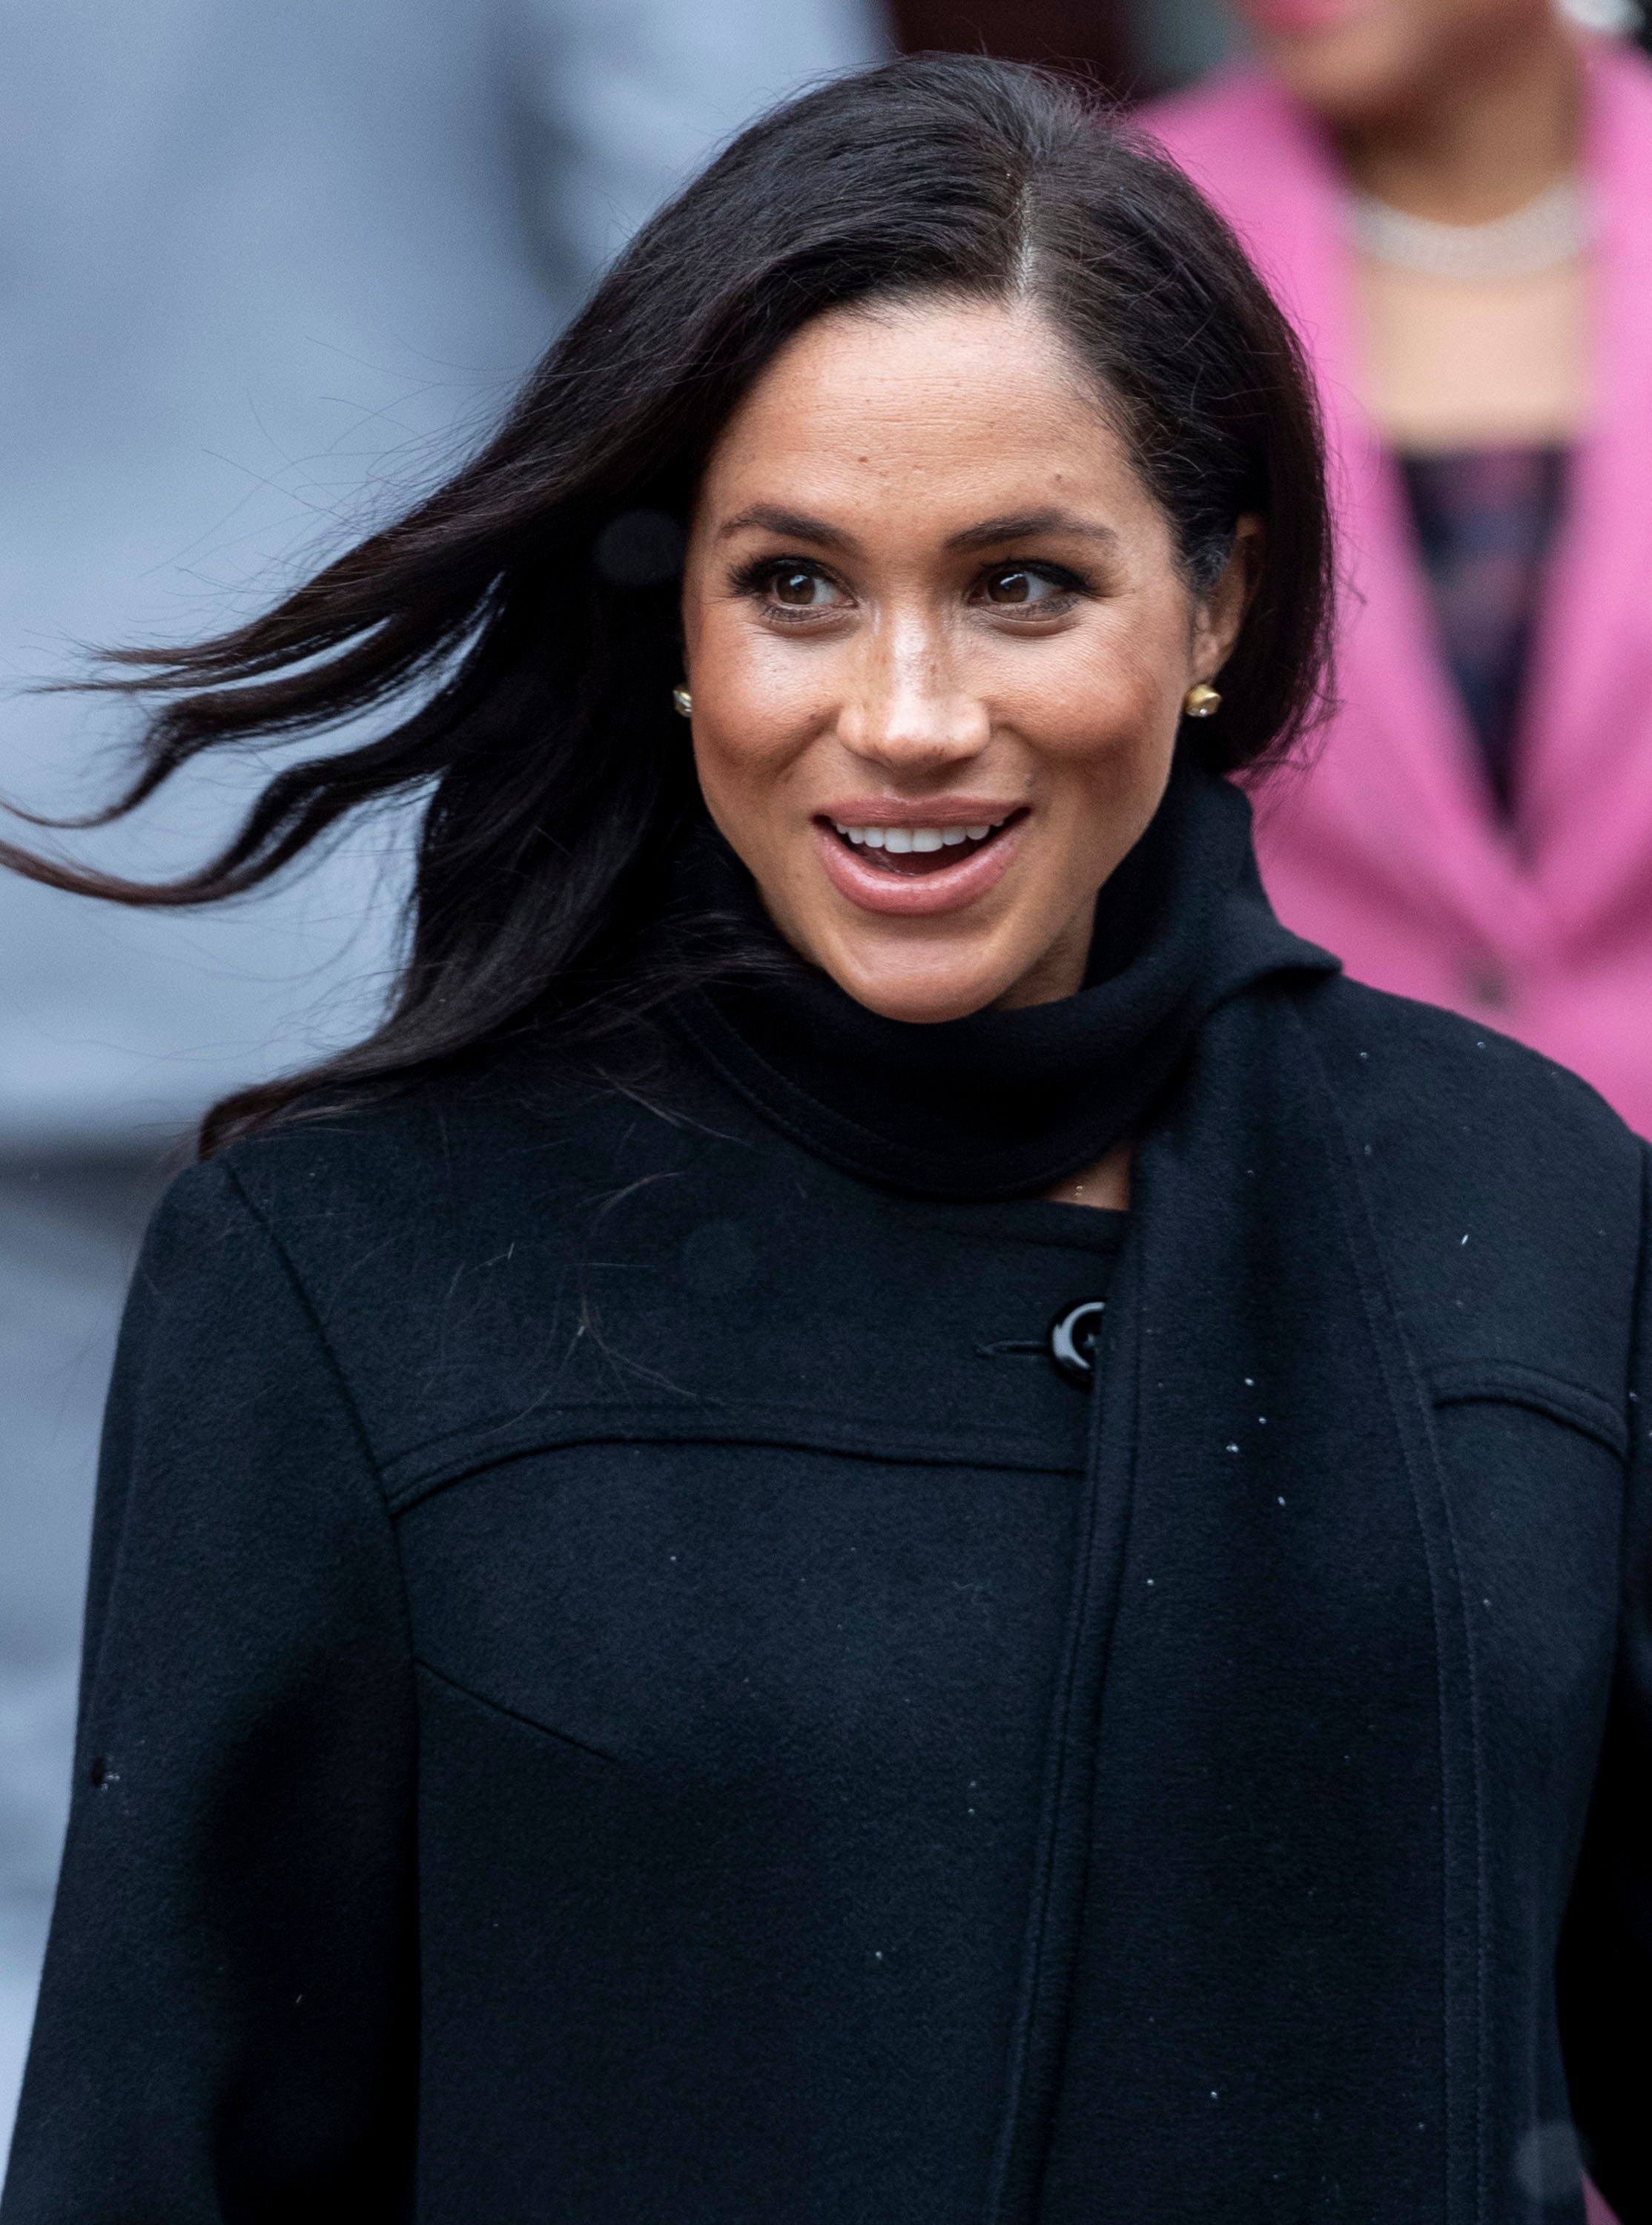 Meghan thanked the crowd for waiting in the cold tosay hello.